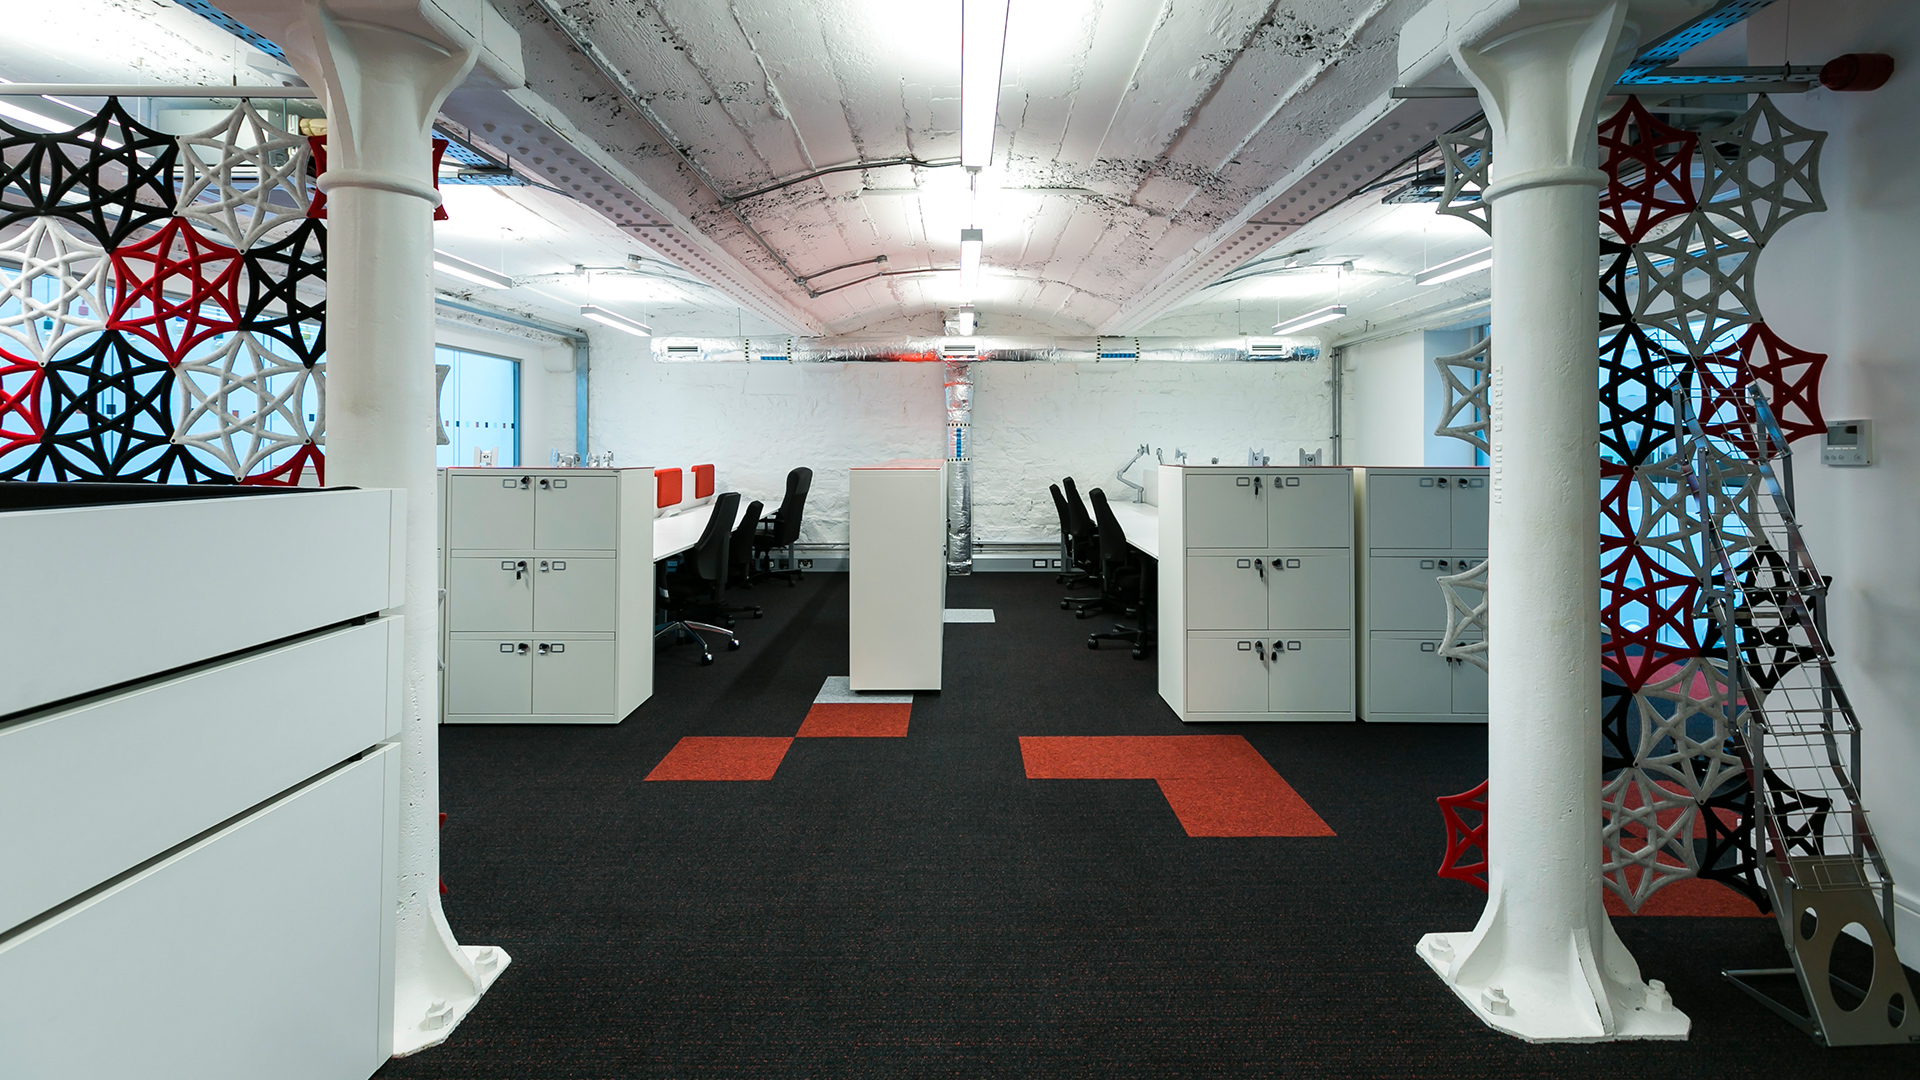 http://The%20Grainstore%20Interior%20Office%20Space